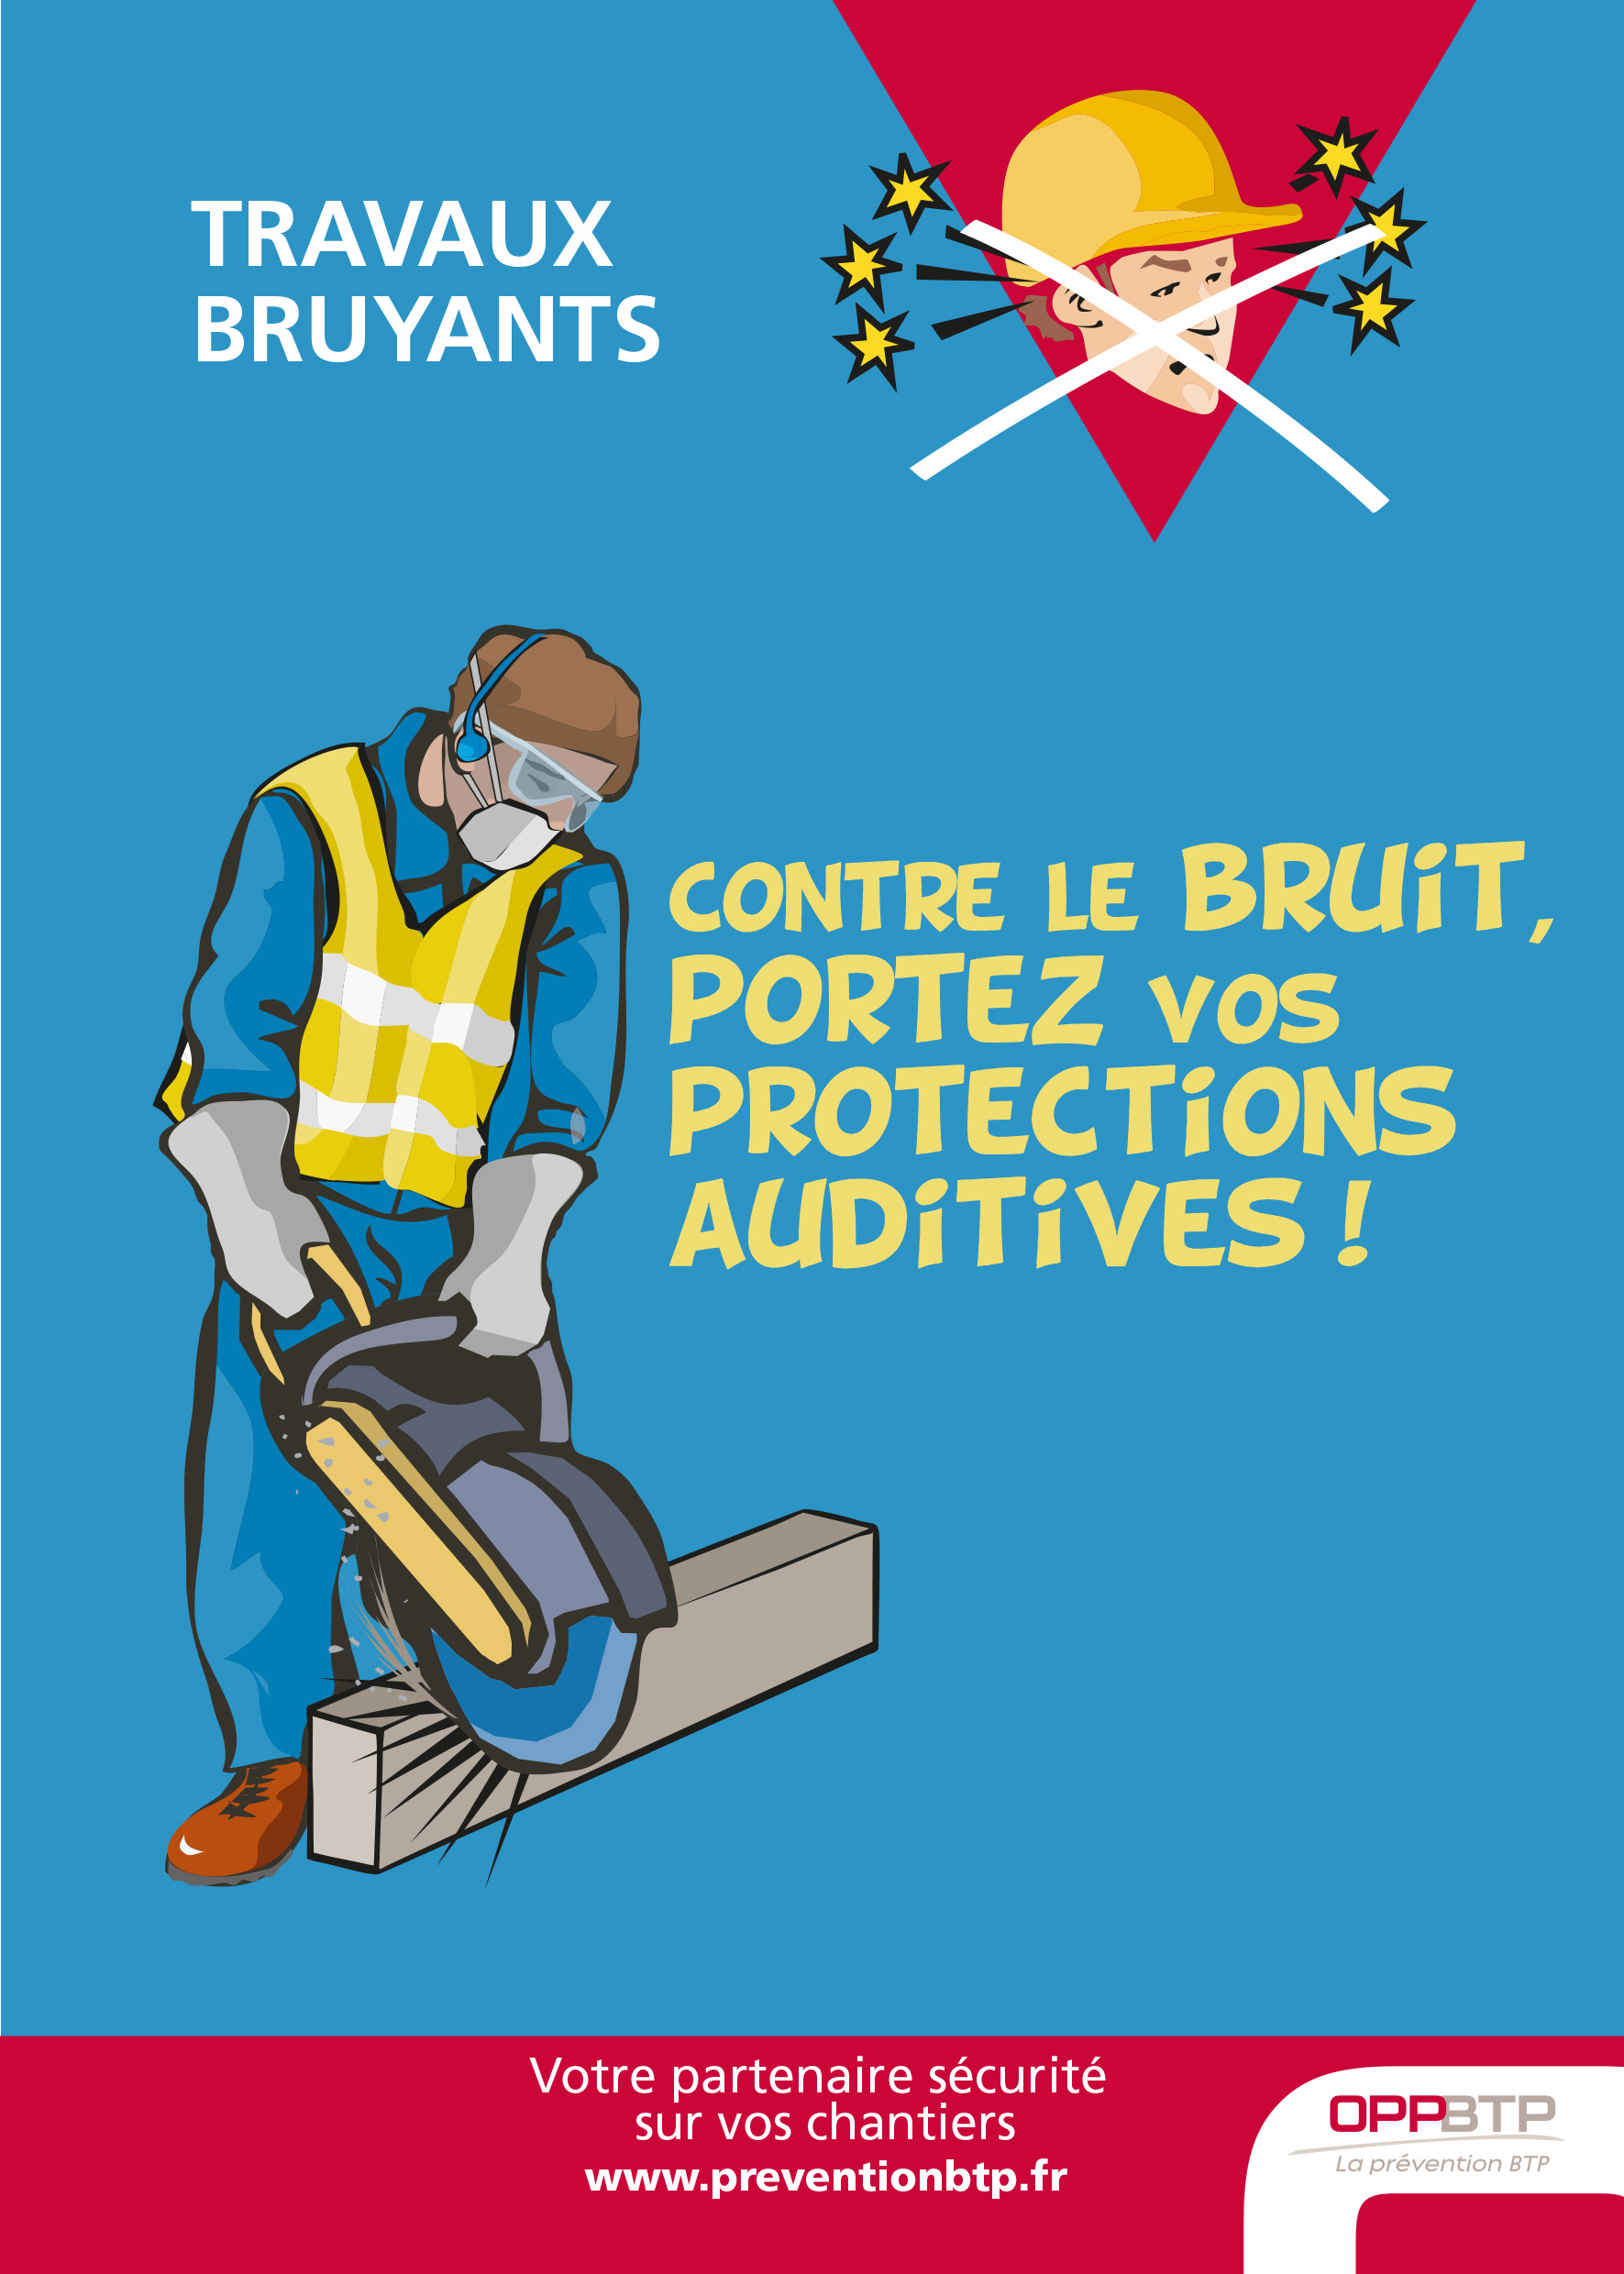 Travaux bruyants contre le bruit portez vos protections auditives pr vention btp - Capitonner une porte contre le bruit ...